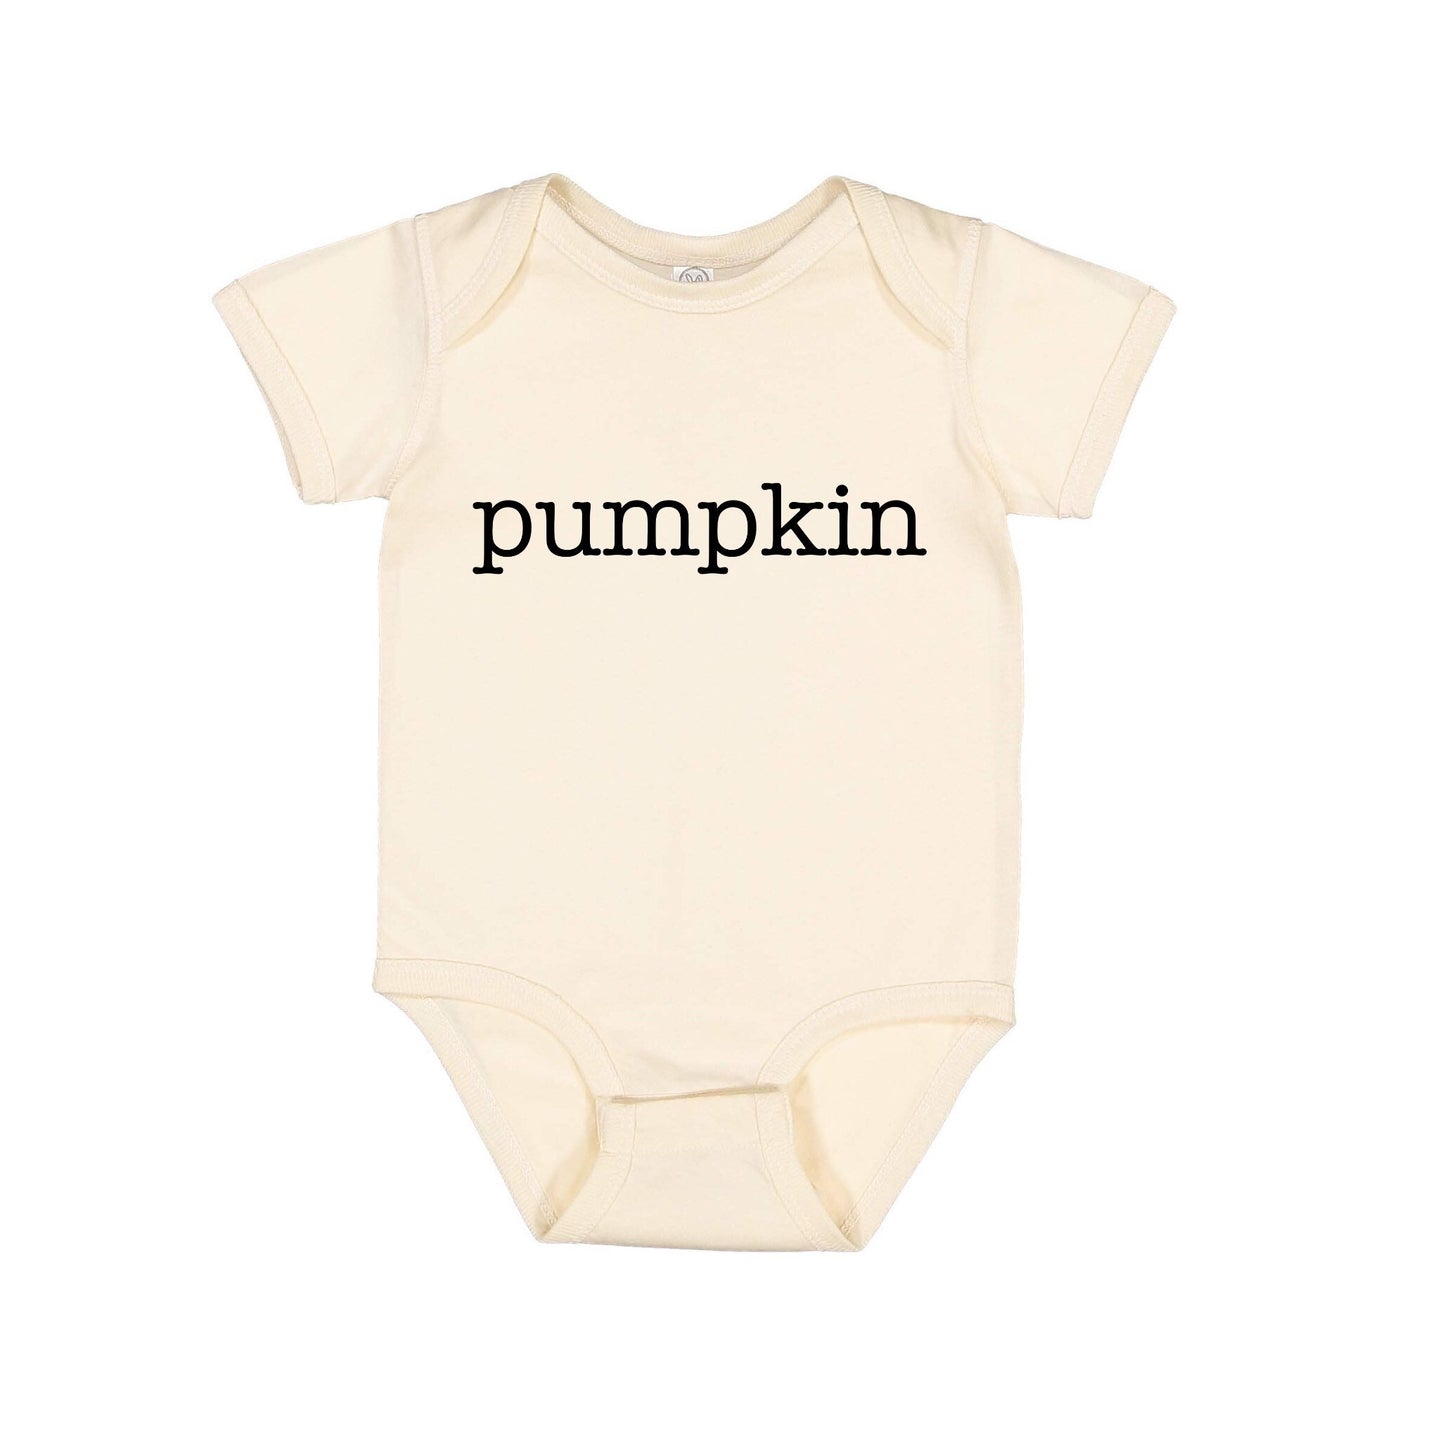 Pumpkin - Infant Baby Rib Bodysuit - Onesie - Girl - Boy - unisex